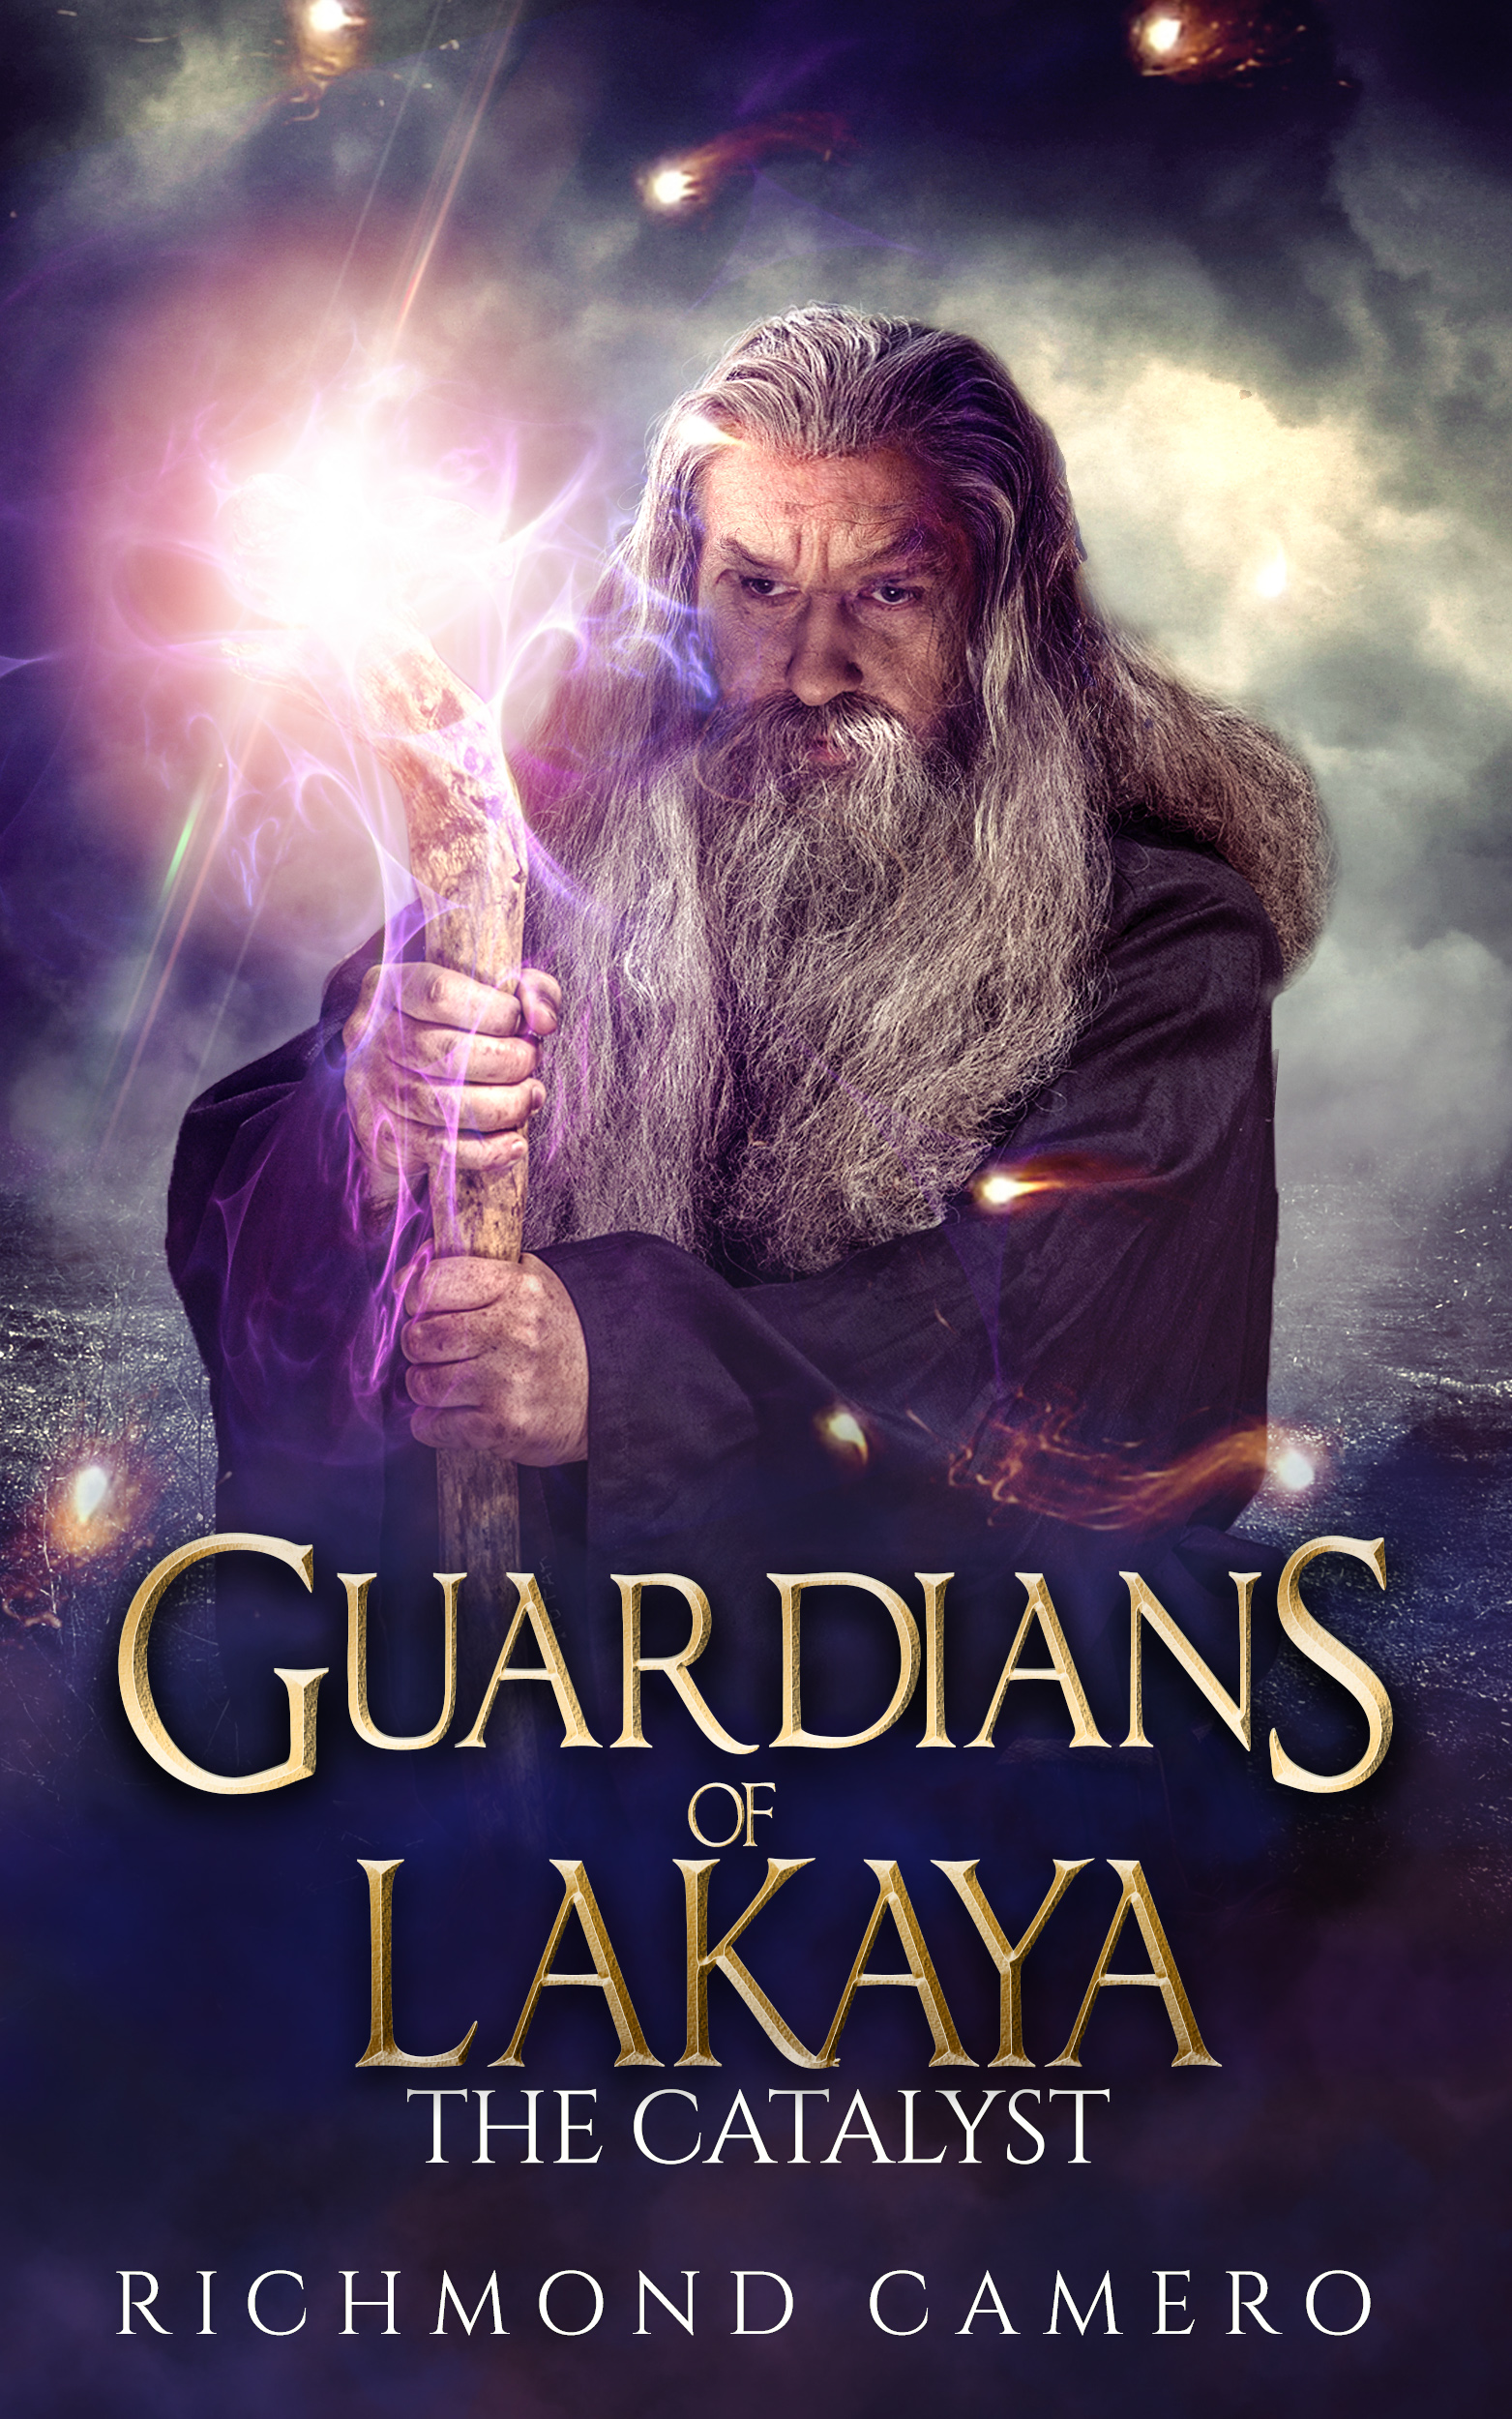 Guardians of Lakaya 1: The Catalyst